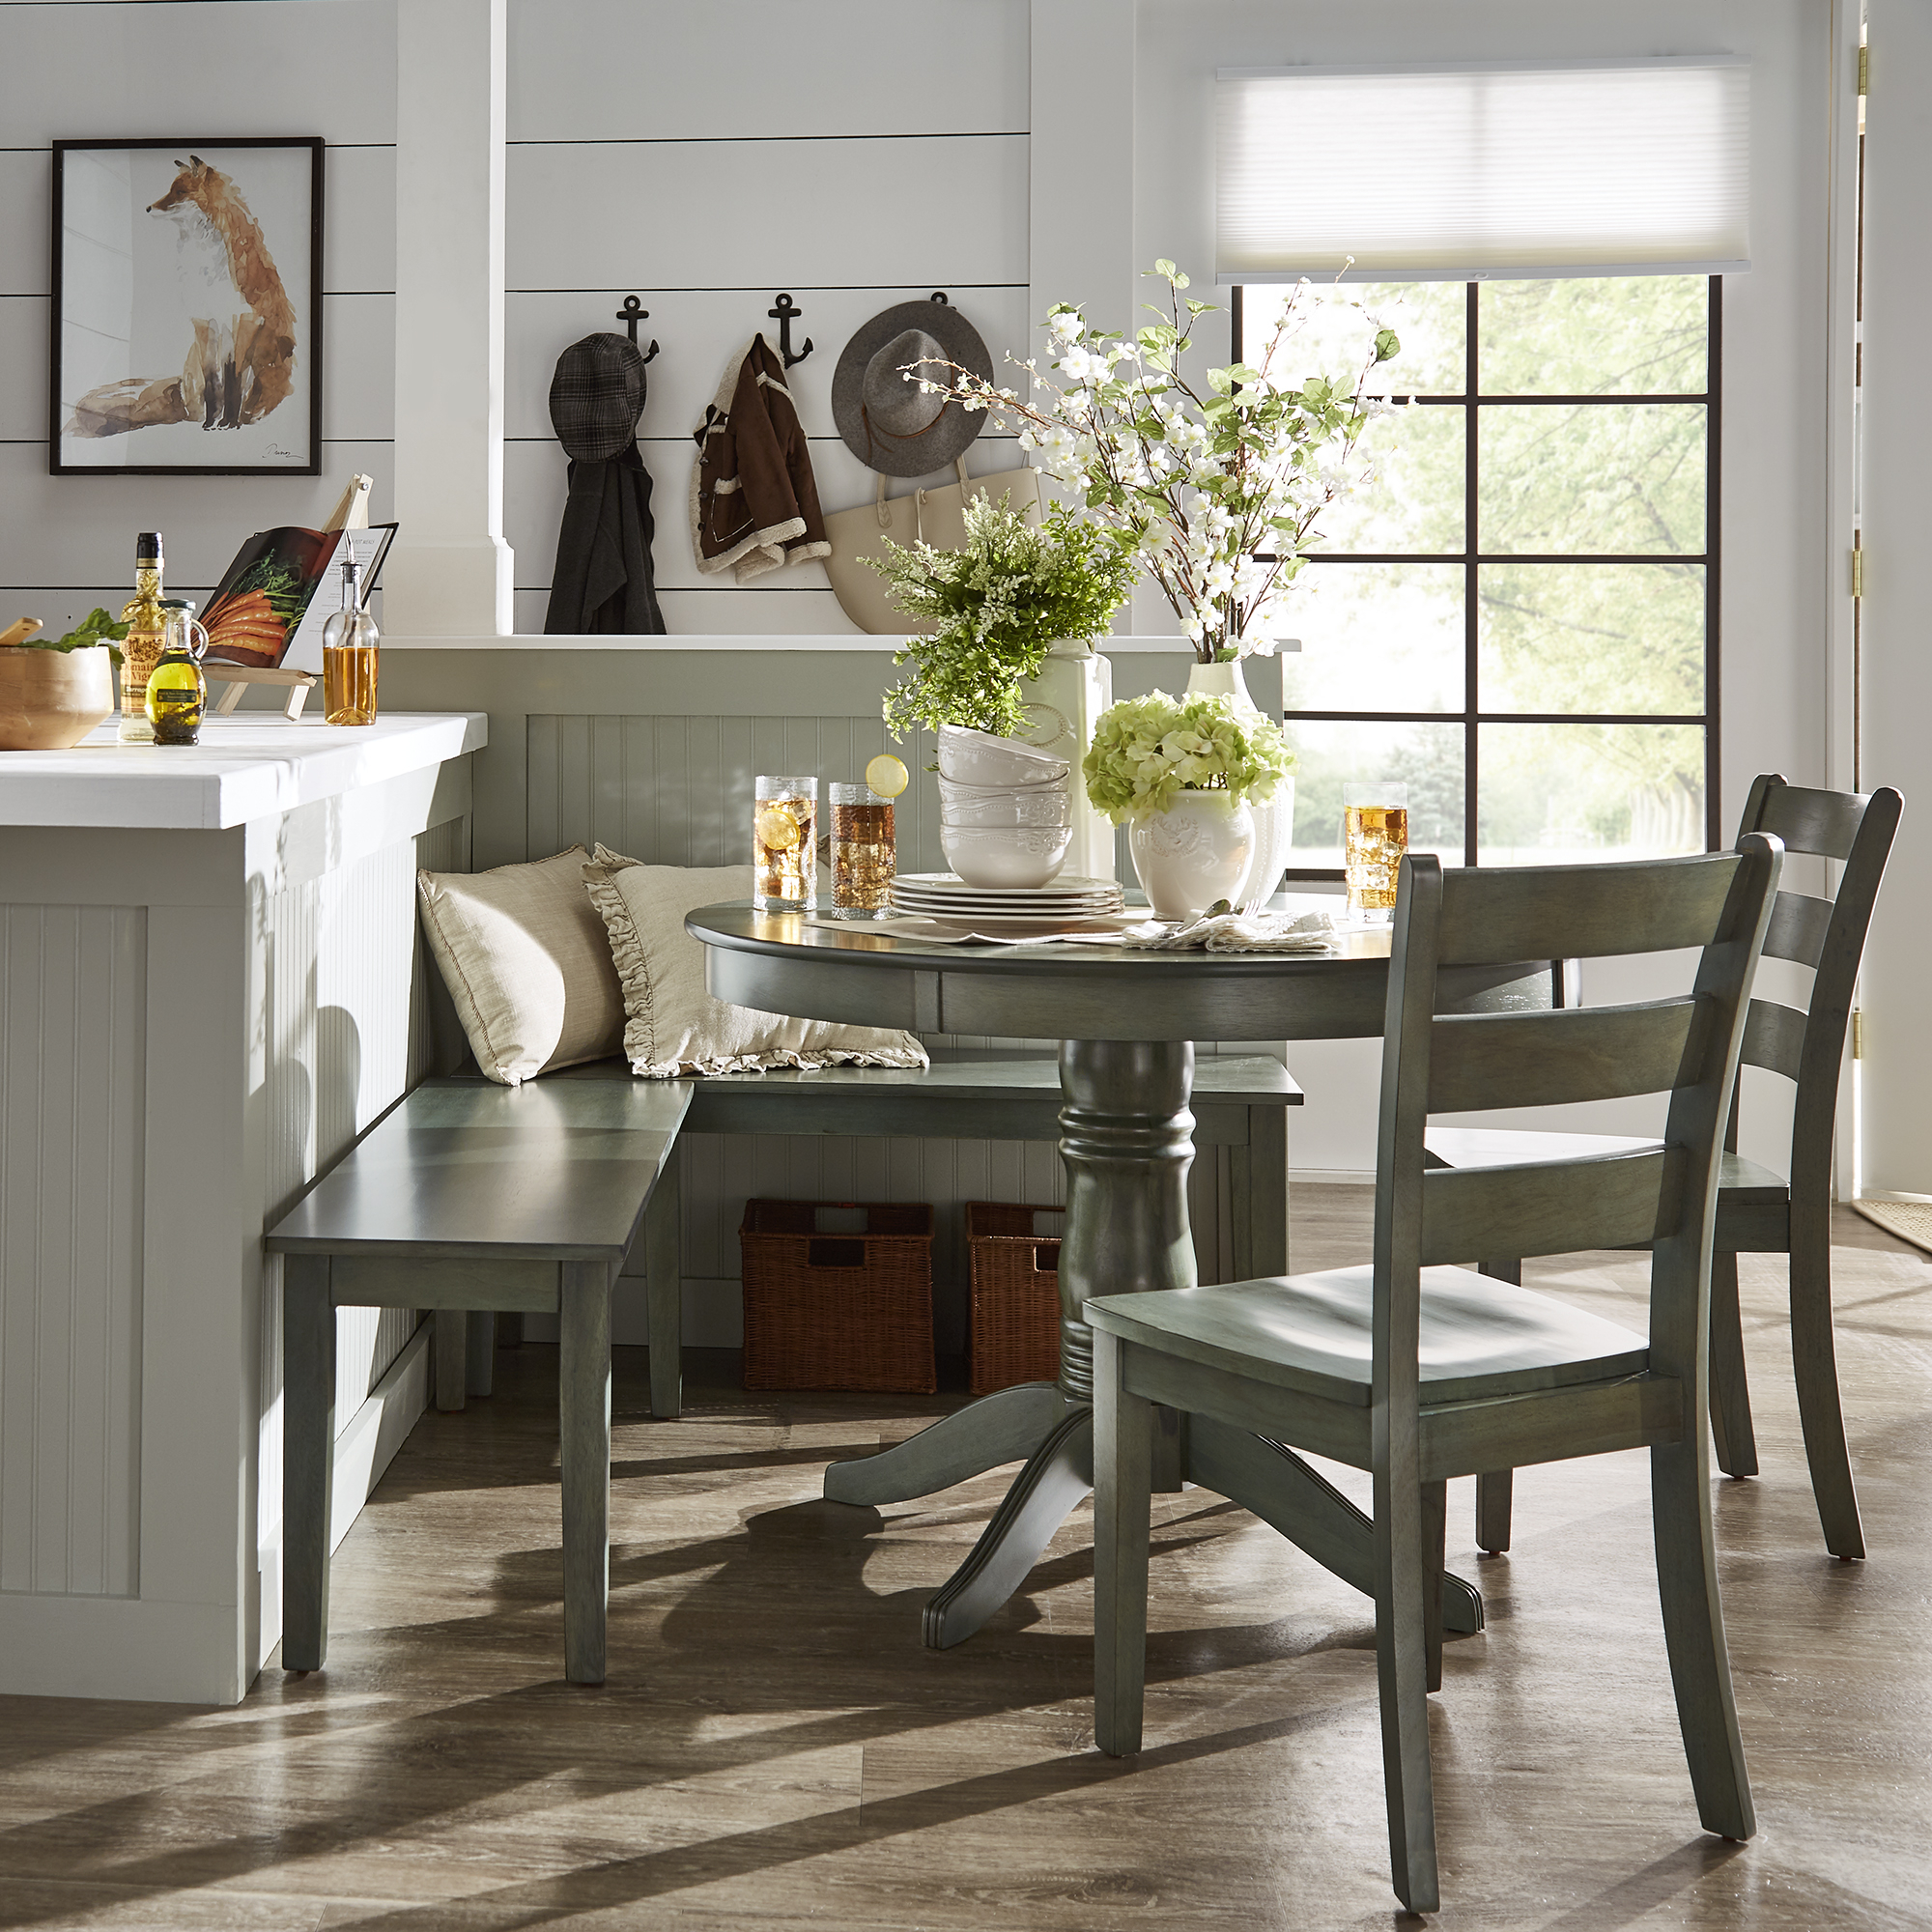 Weston Home Lexington 5 Piece Breakfast Nook Dining Set, Round Table, Multiple Colors For Most Up To Date 5 Piece Breakfast Nook Dining Sets (View 5 of 20)